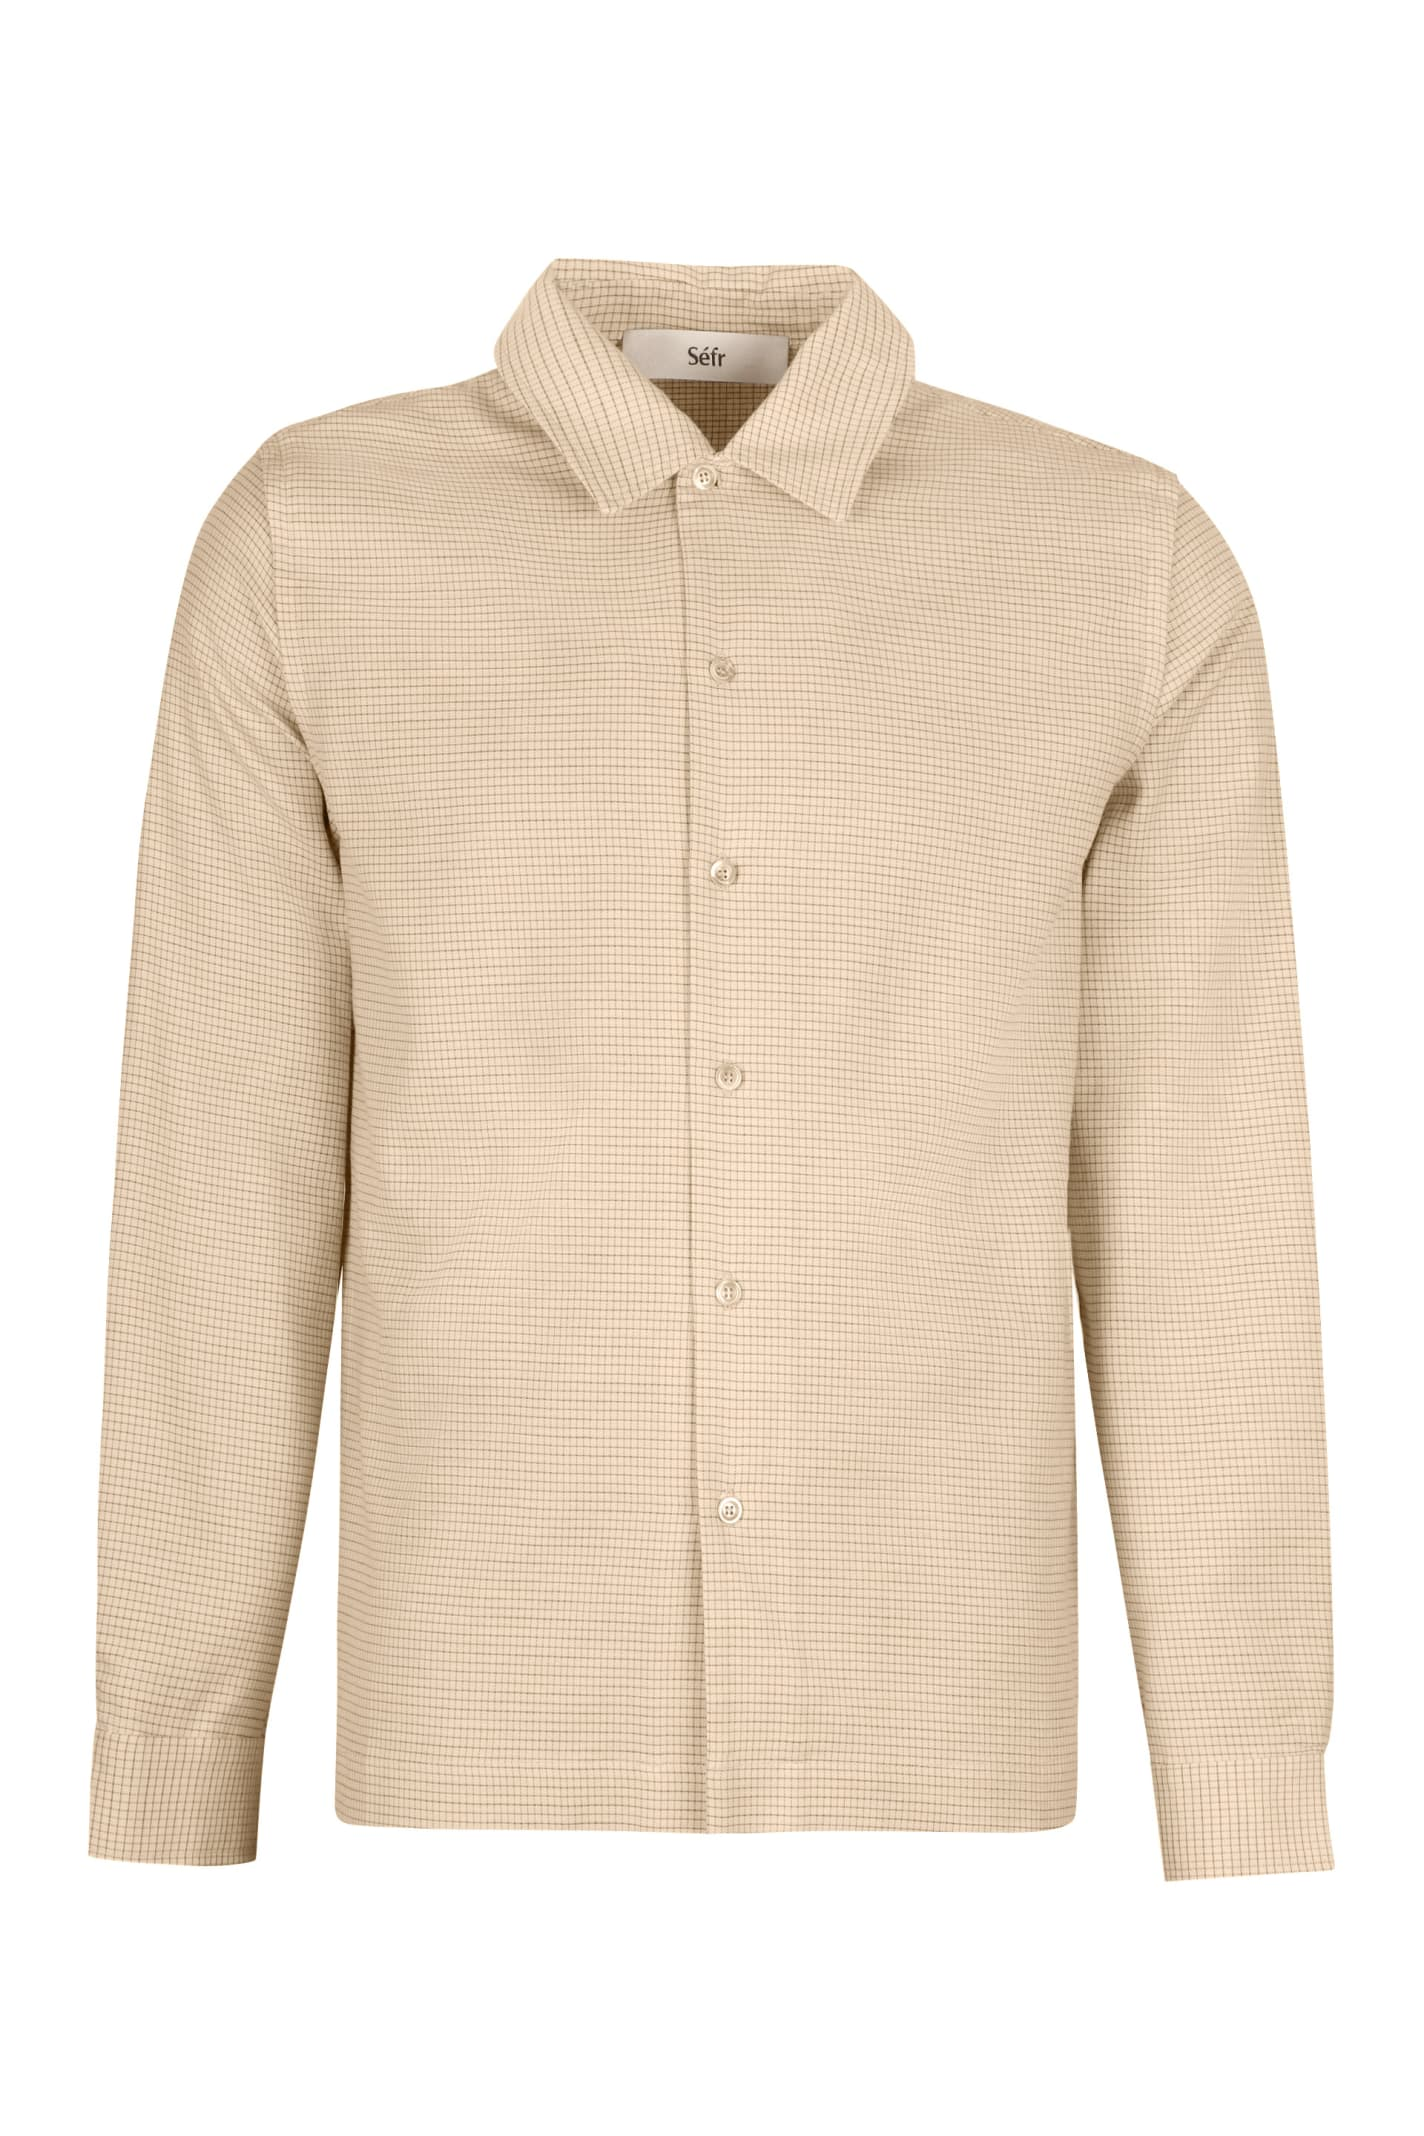 Séfr Rami Cotton Blend Buttoned Shirt